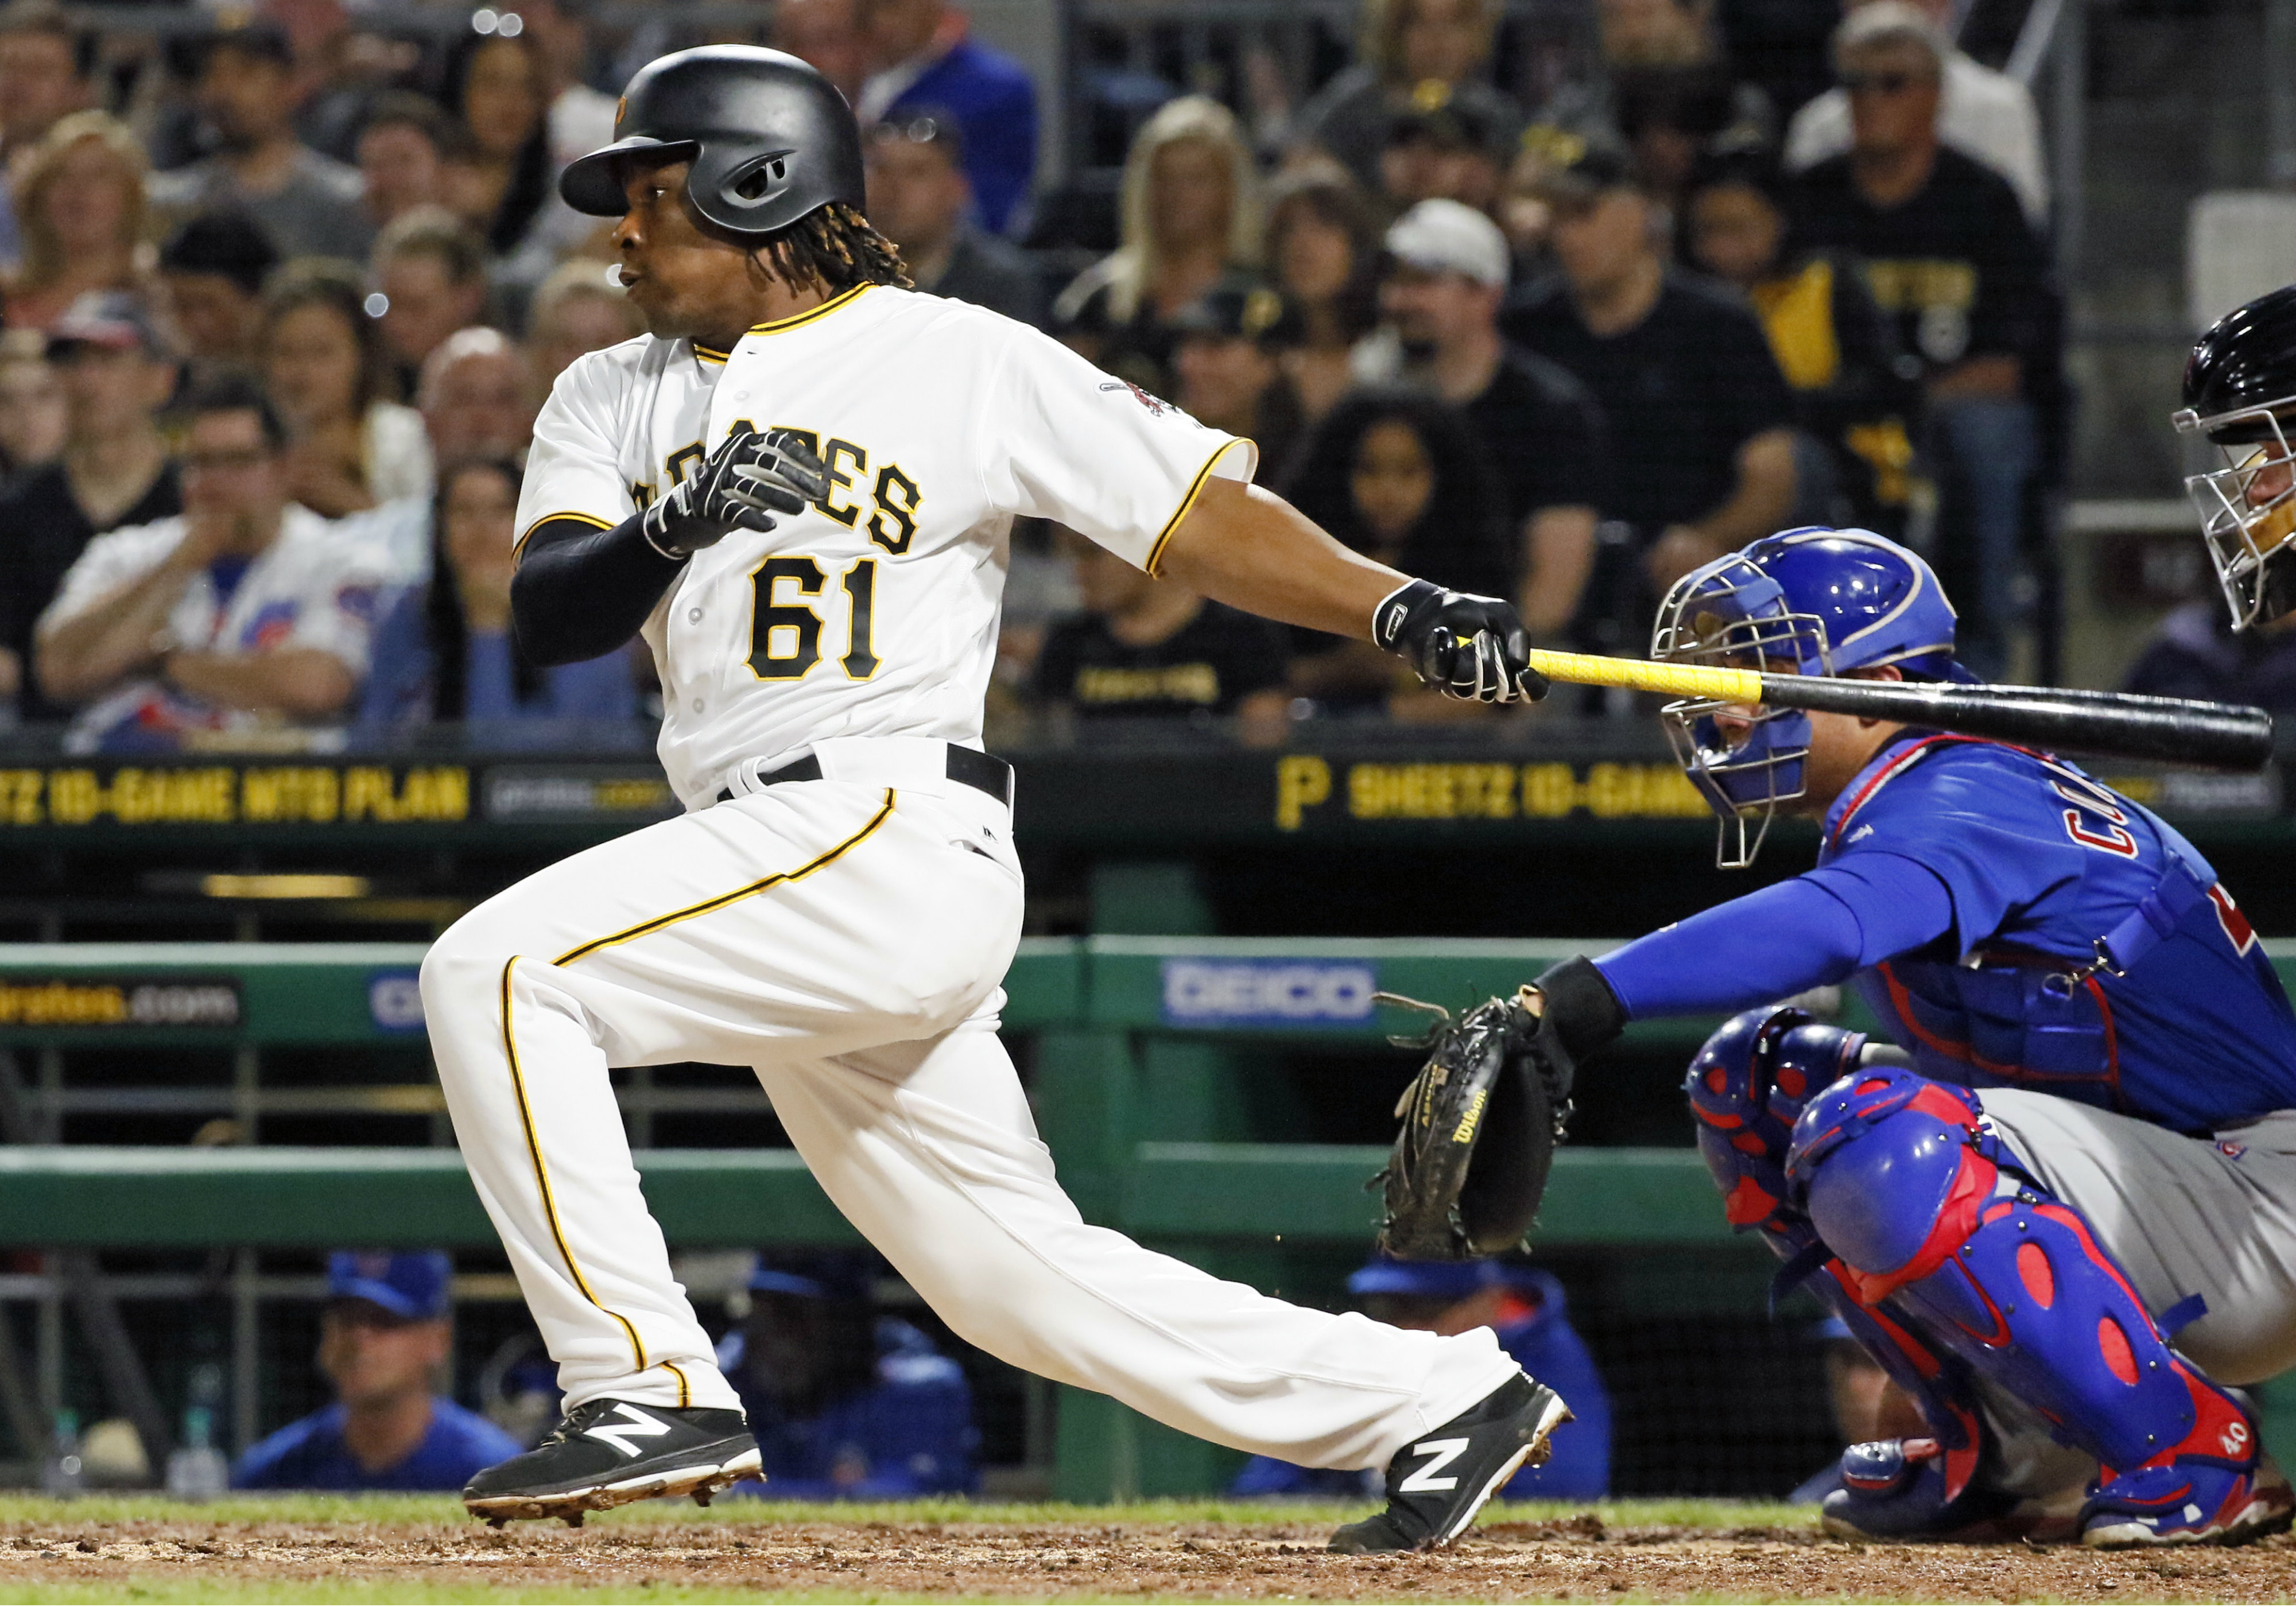 Pittsburgh Pirates' Gift Ngoepe, a native of South Africa, and the first baseball player from the continent of Africa to play in the Major Leagues, hits a single off Chicago Cubs starting pitcher Jon Lester in his first at-bat in the fourth inning of a baseball game in Pittsburgh, Wednesday, April 26, 2017.